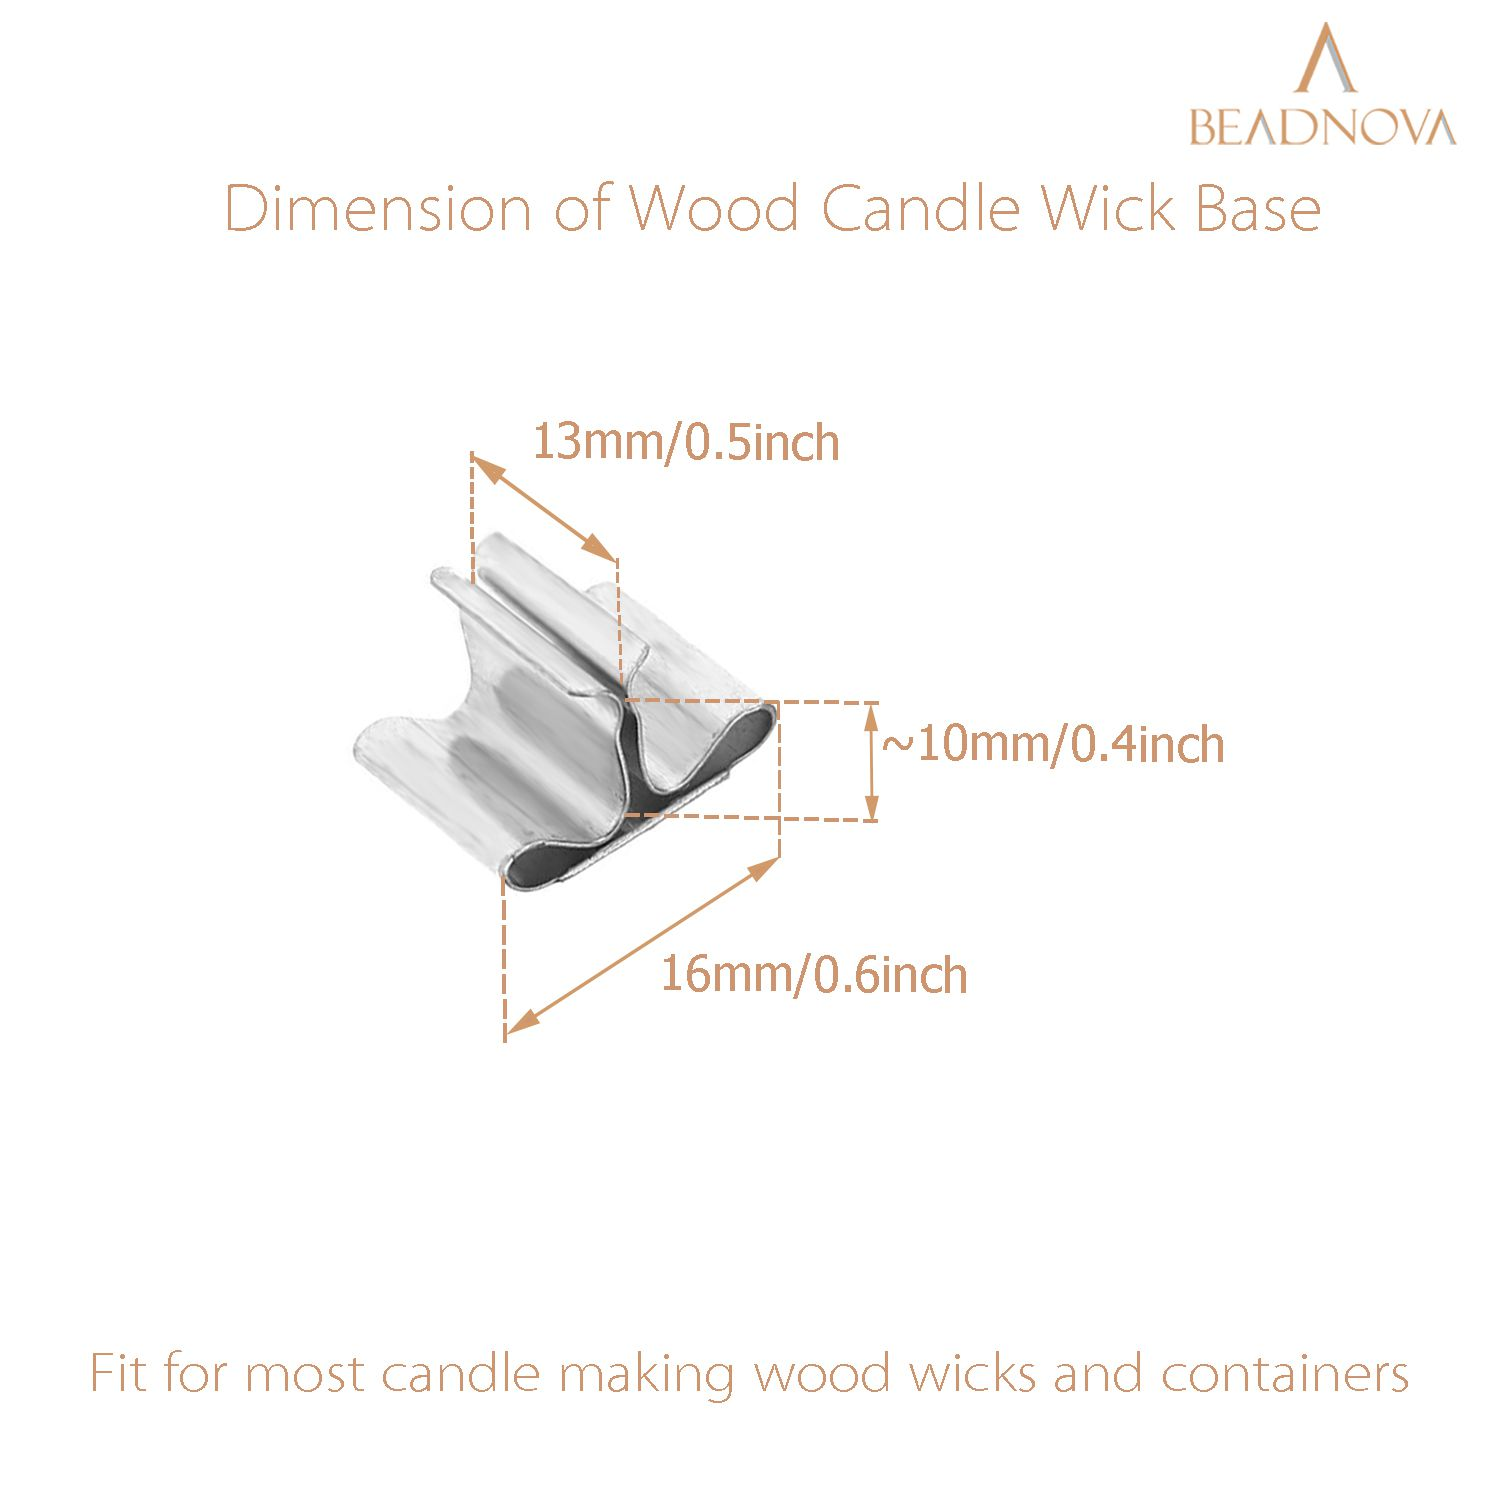 BEADNOVA Wood Candle Wick Clips 30pcs Wooden Candle Wick Sustainer Tabs for Candle Making and Candle DIY (16mm/ 0.6 inch)